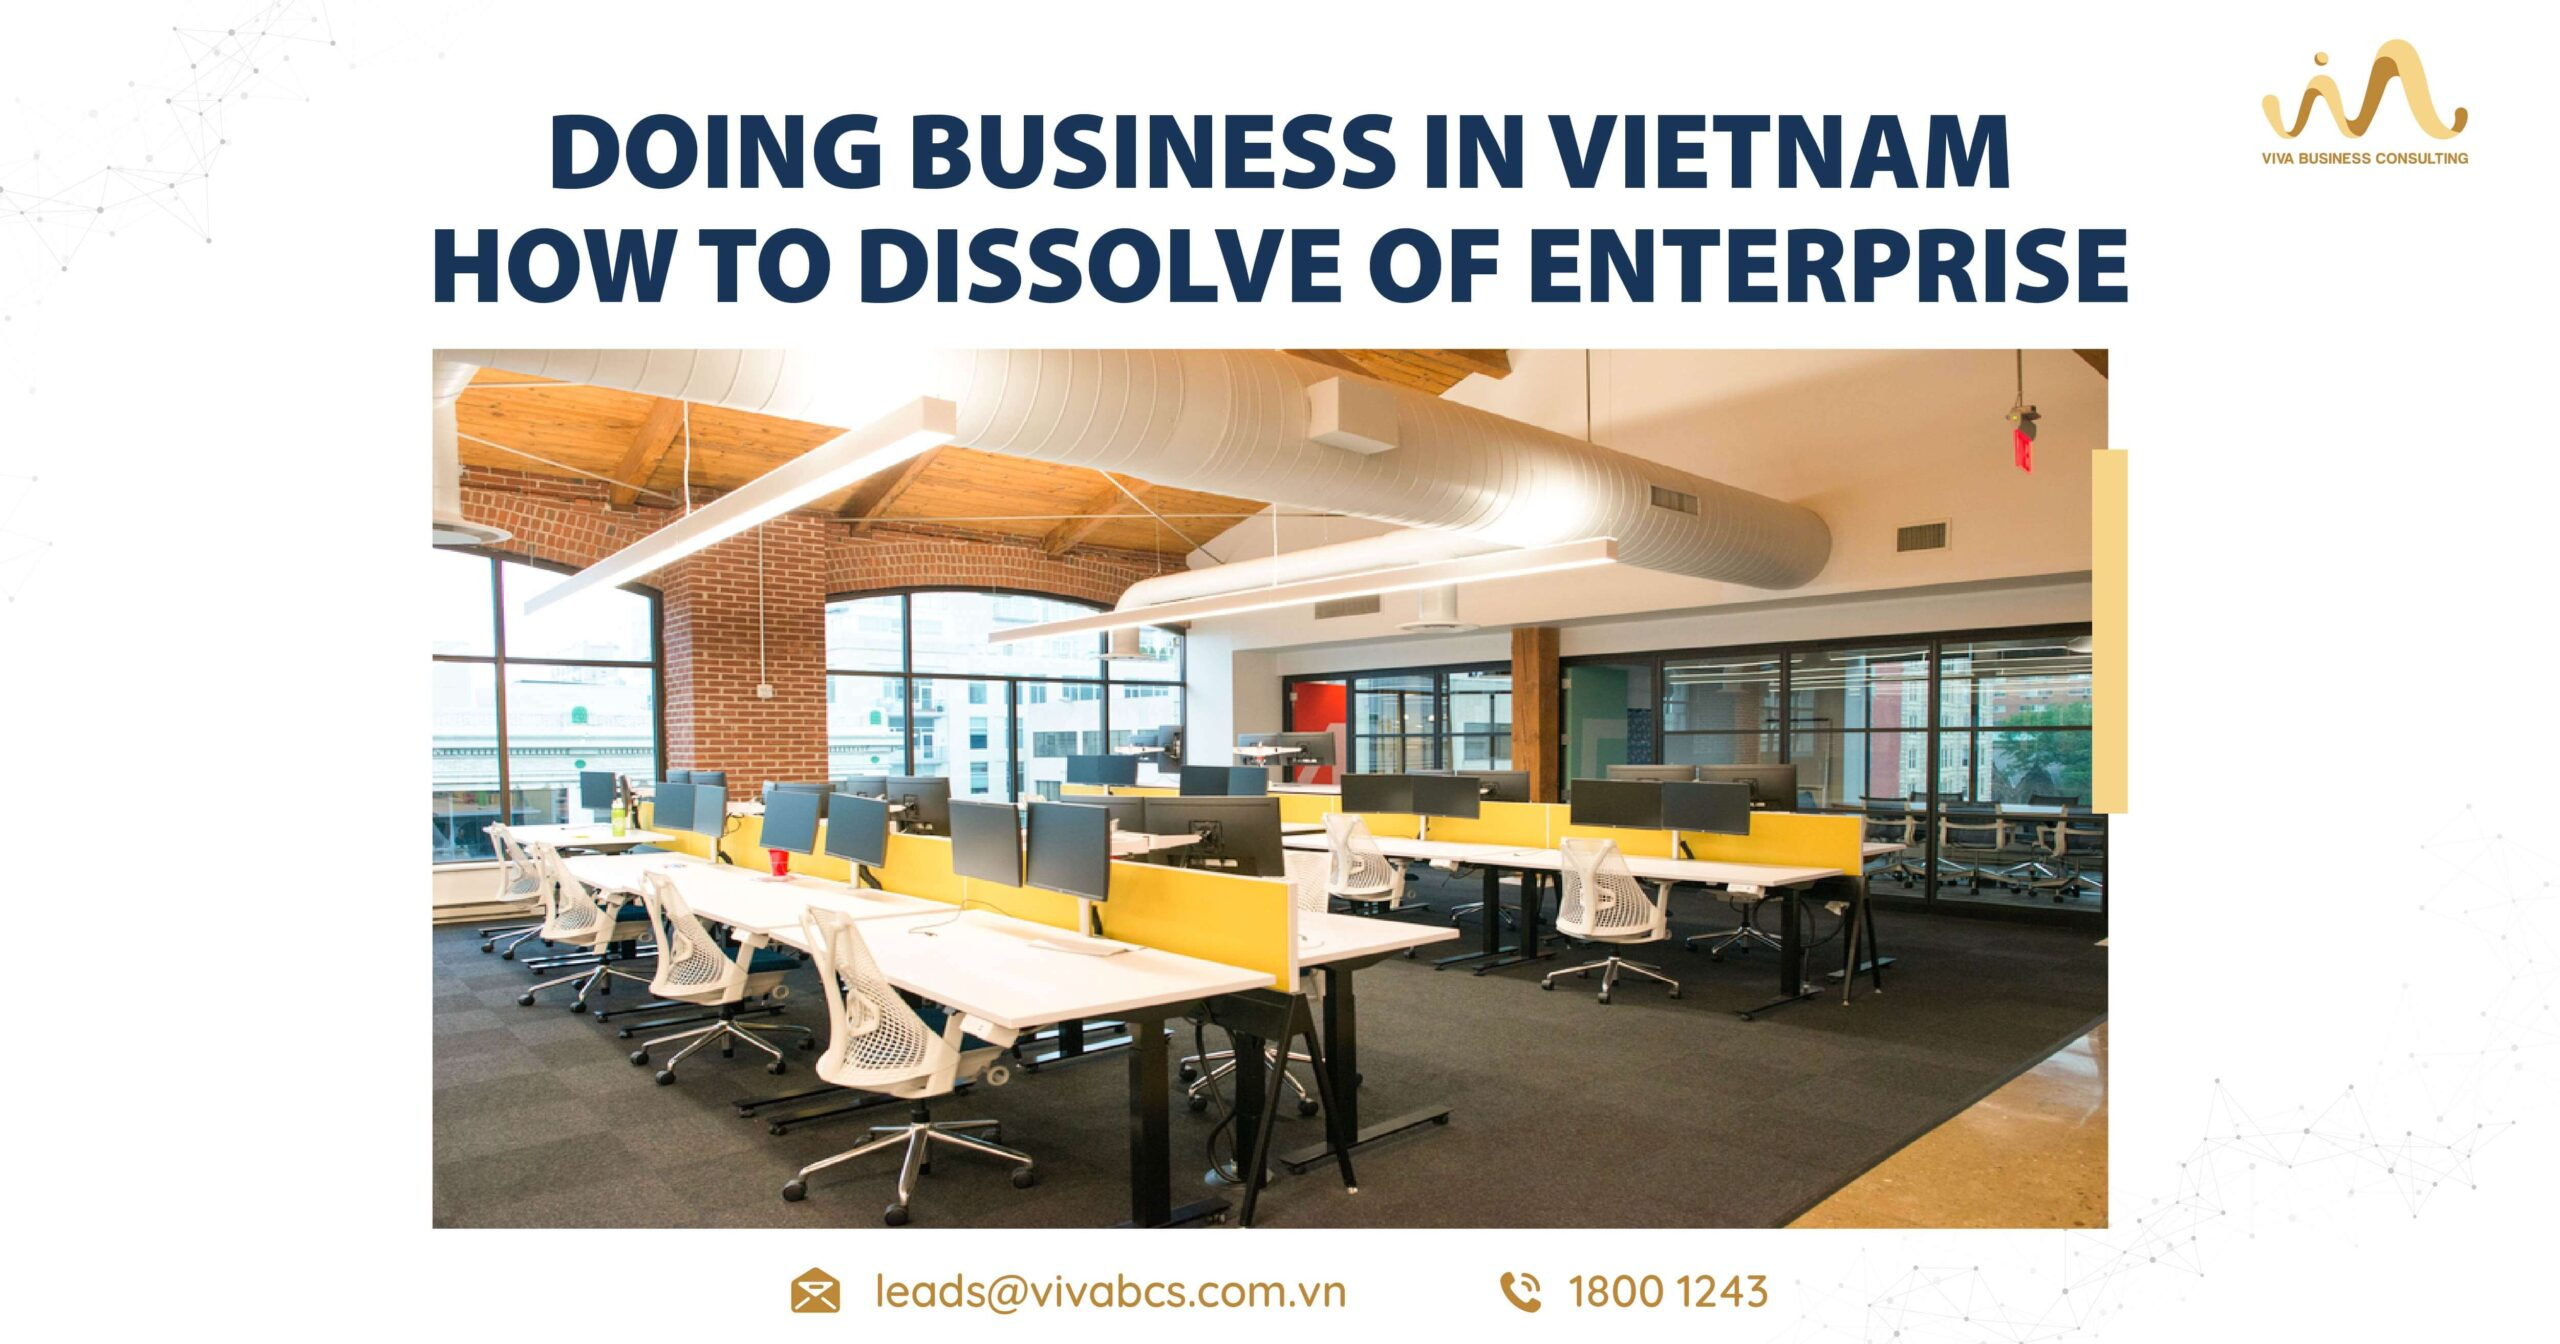 Enterprise Dissolution in Vietnam: General Terms And Conditions